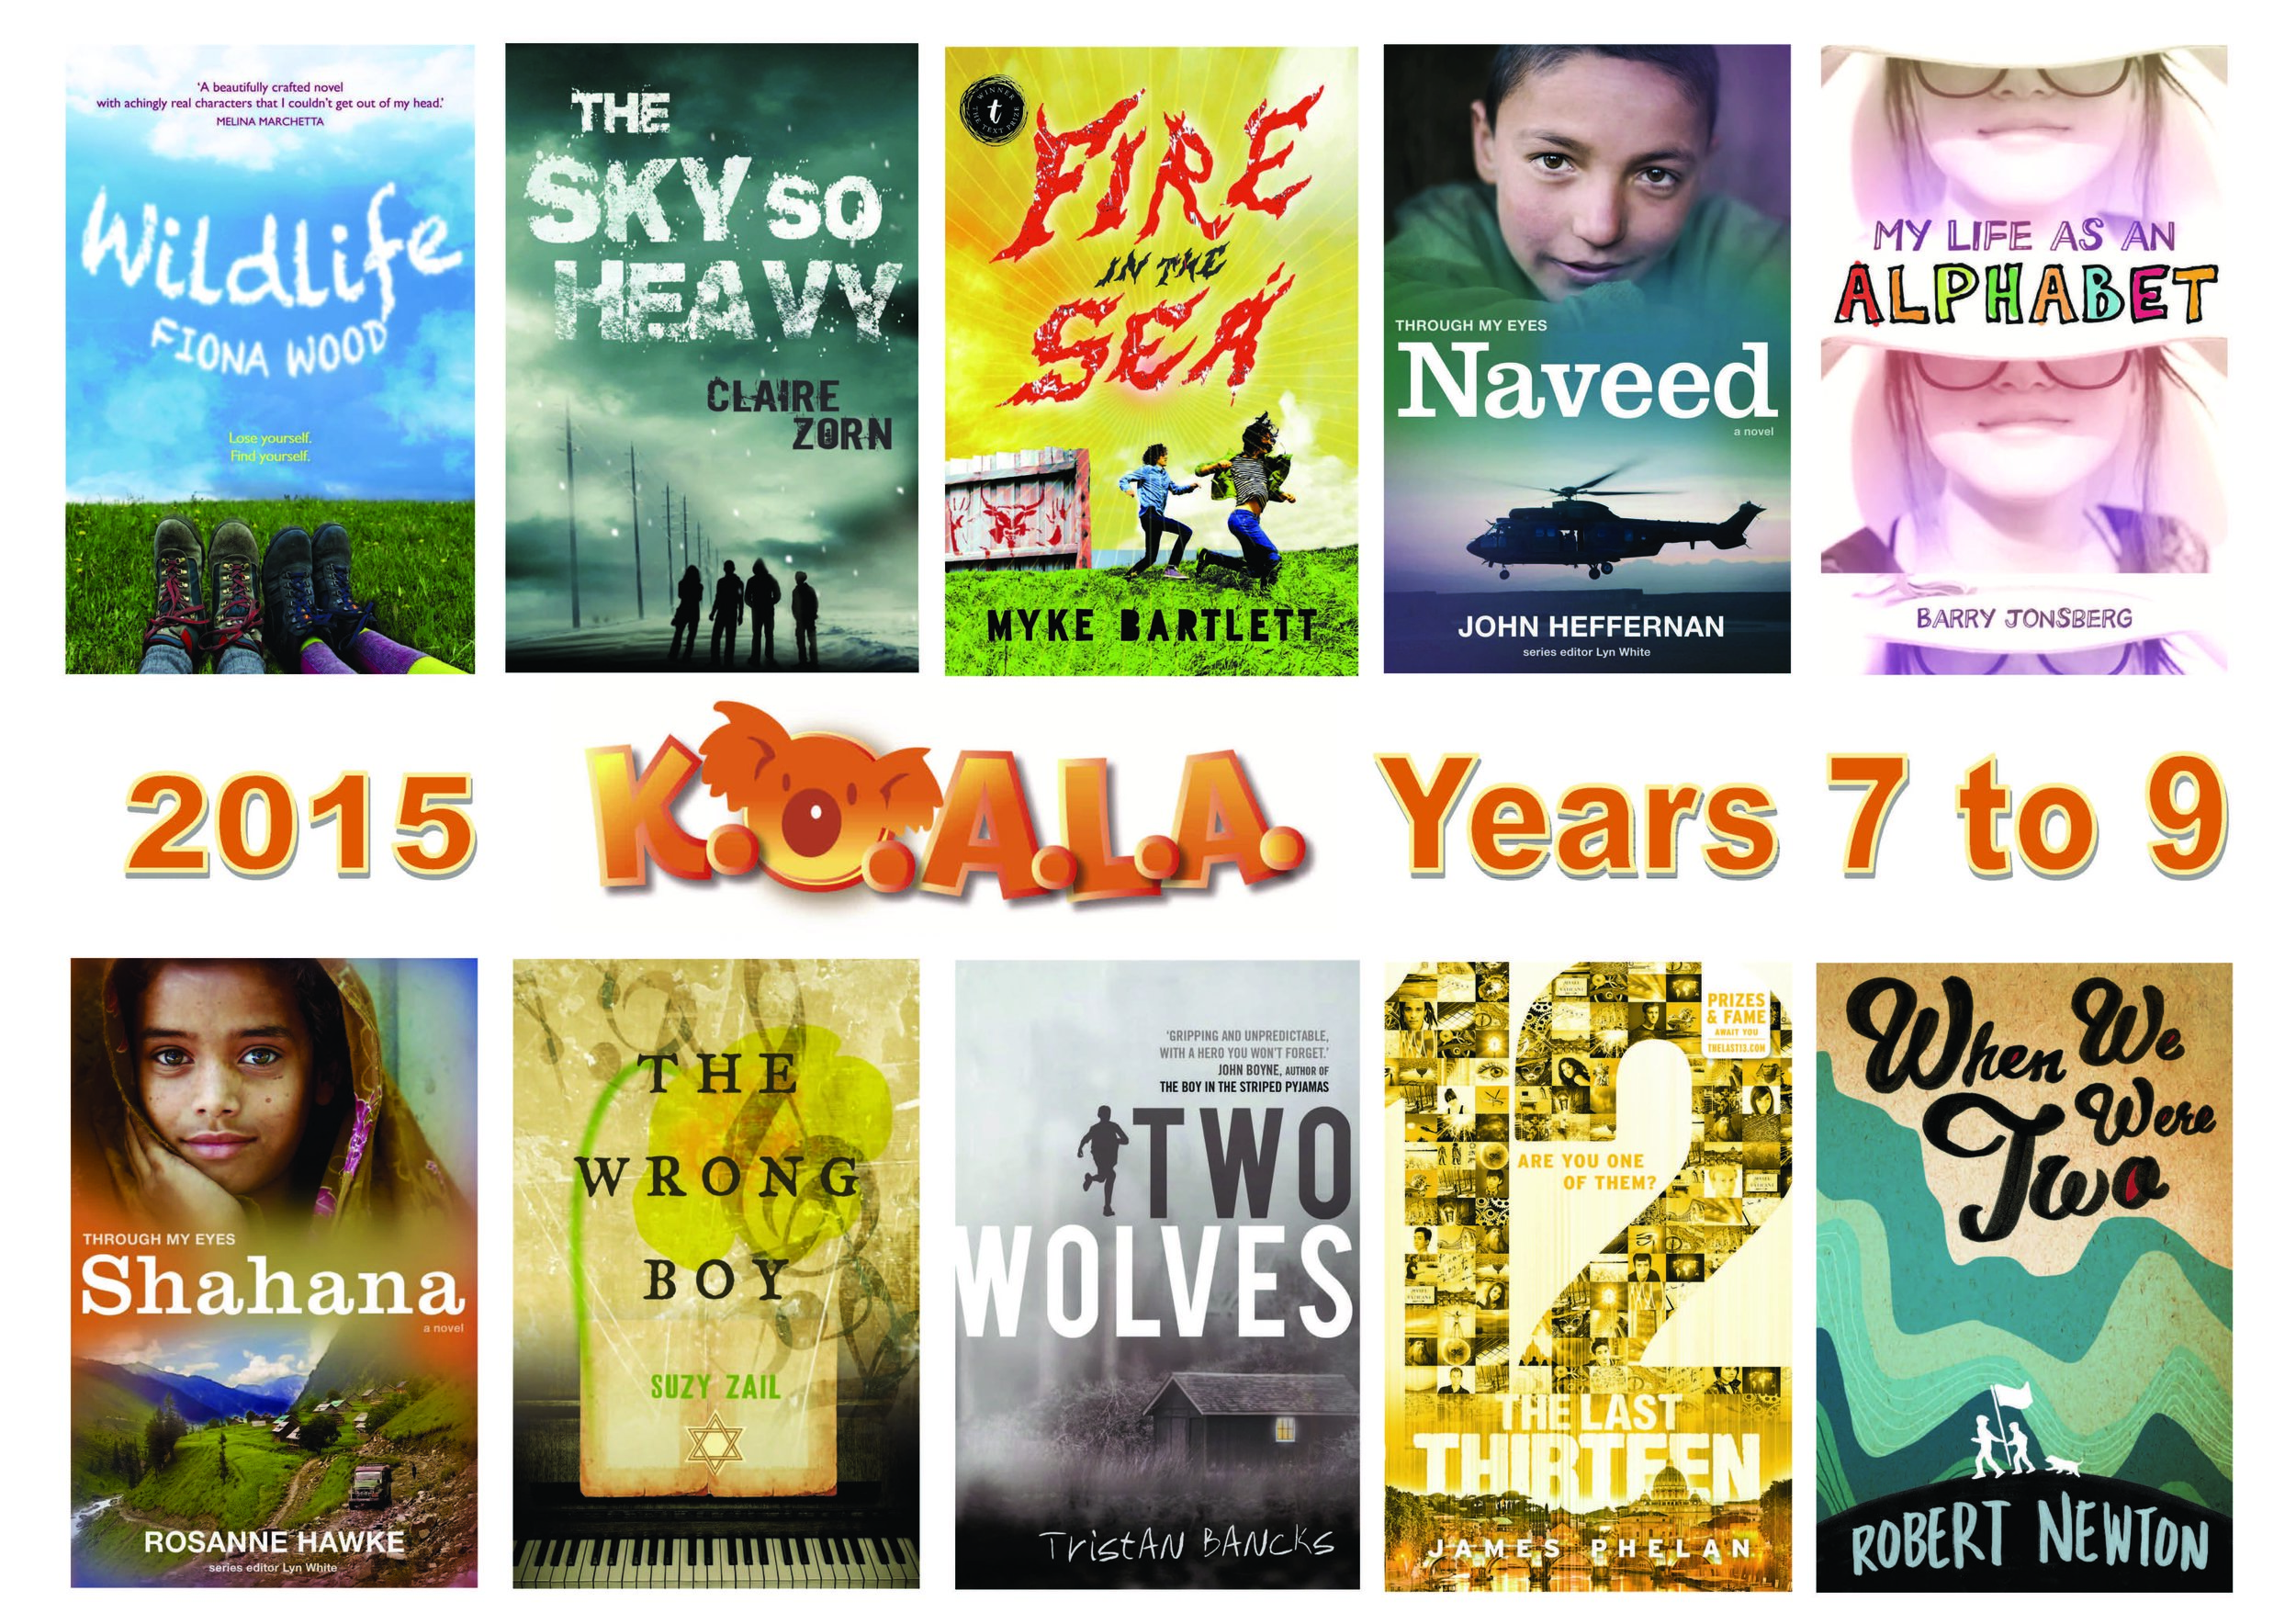 KOALA+Shortlist+posters+7+to+9+2015.jpg